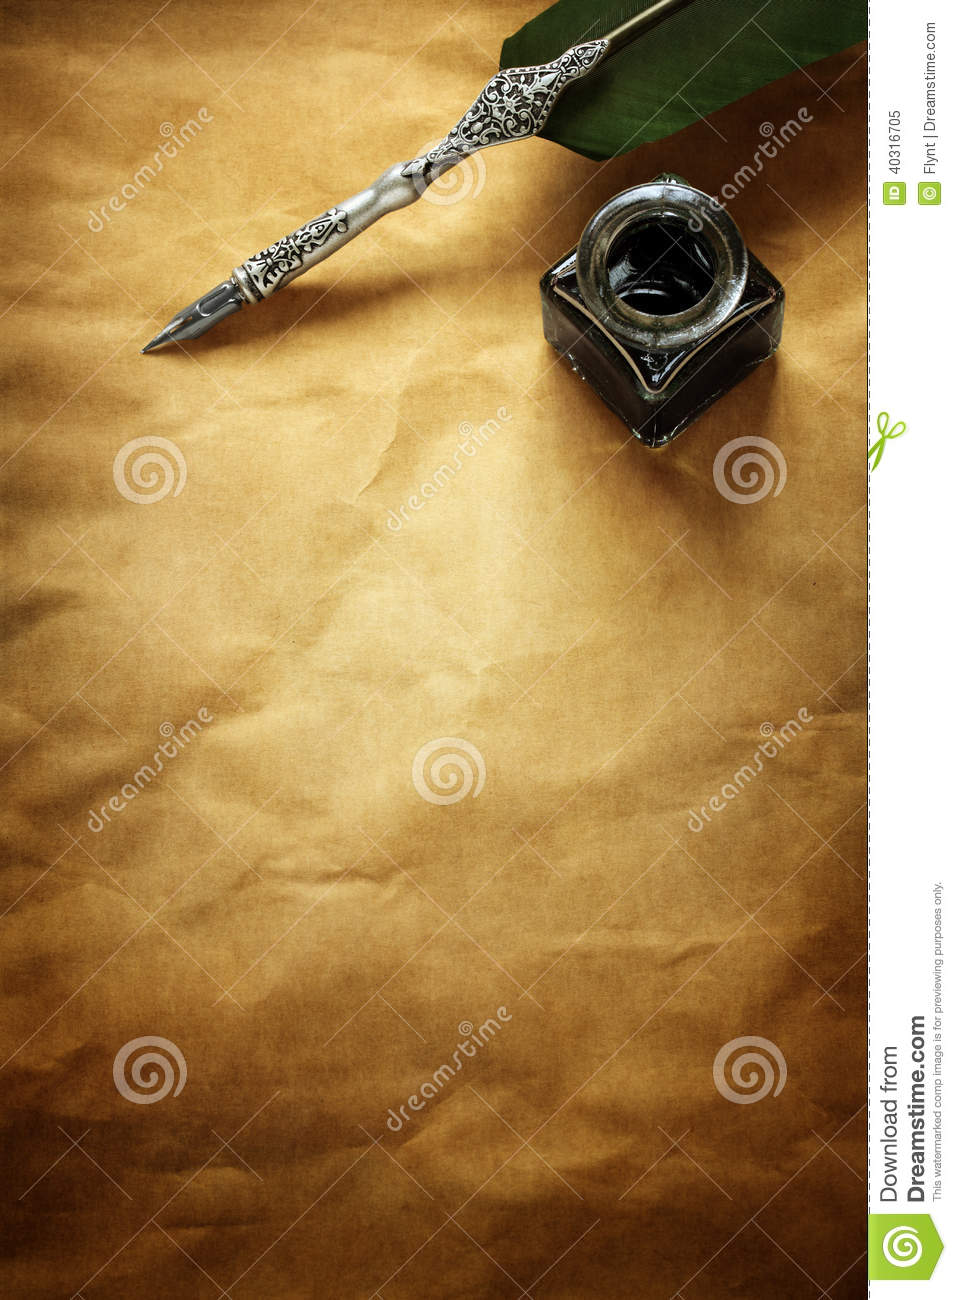 Quill Pen And Ink Well On Parchment Paper Stock Photo ...